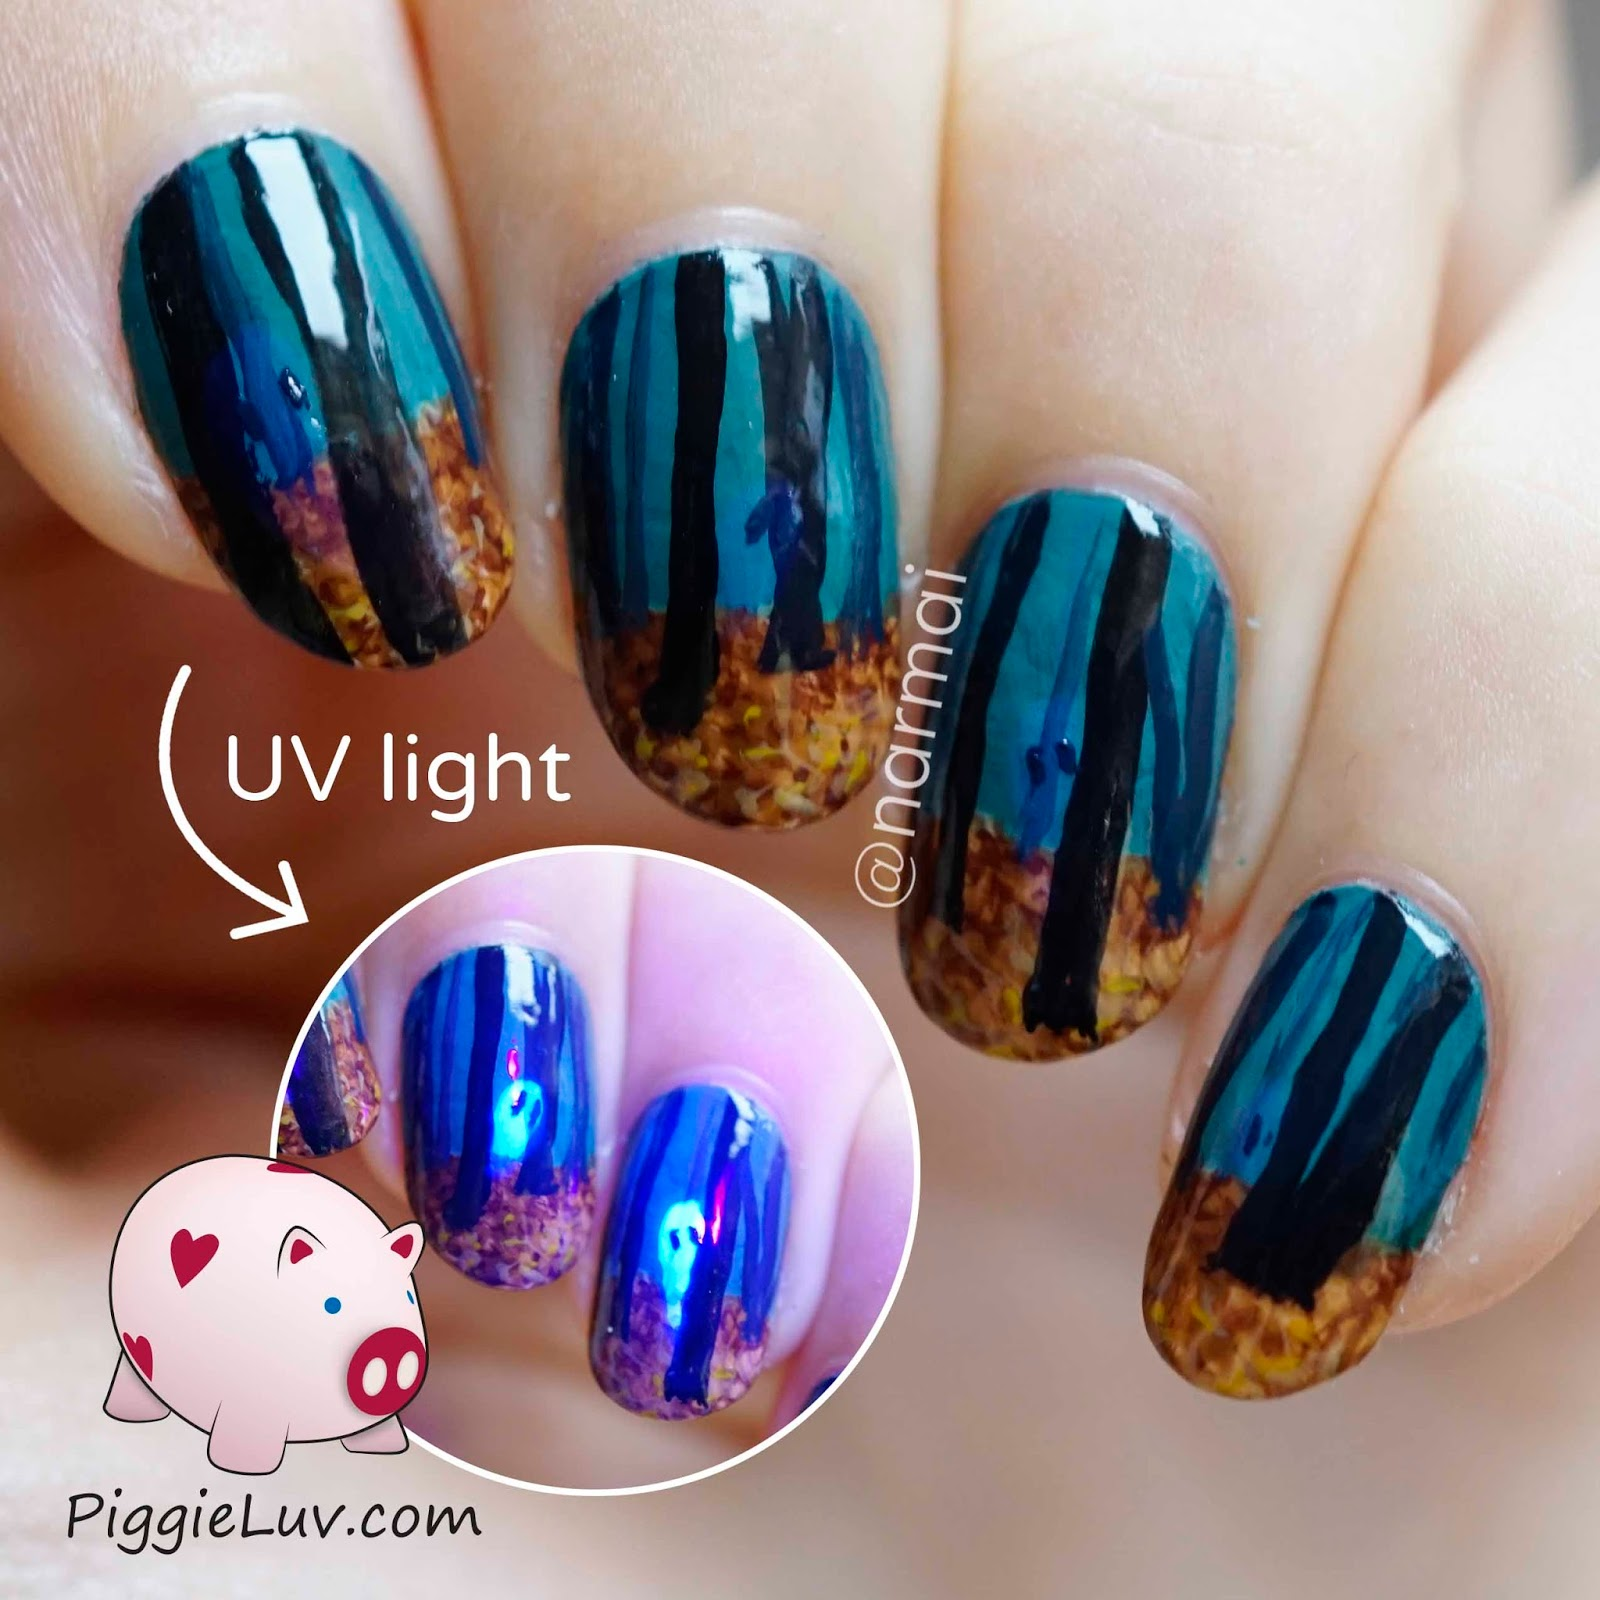 PiggieLuv: Creepy haunted woods nail art for Halloween